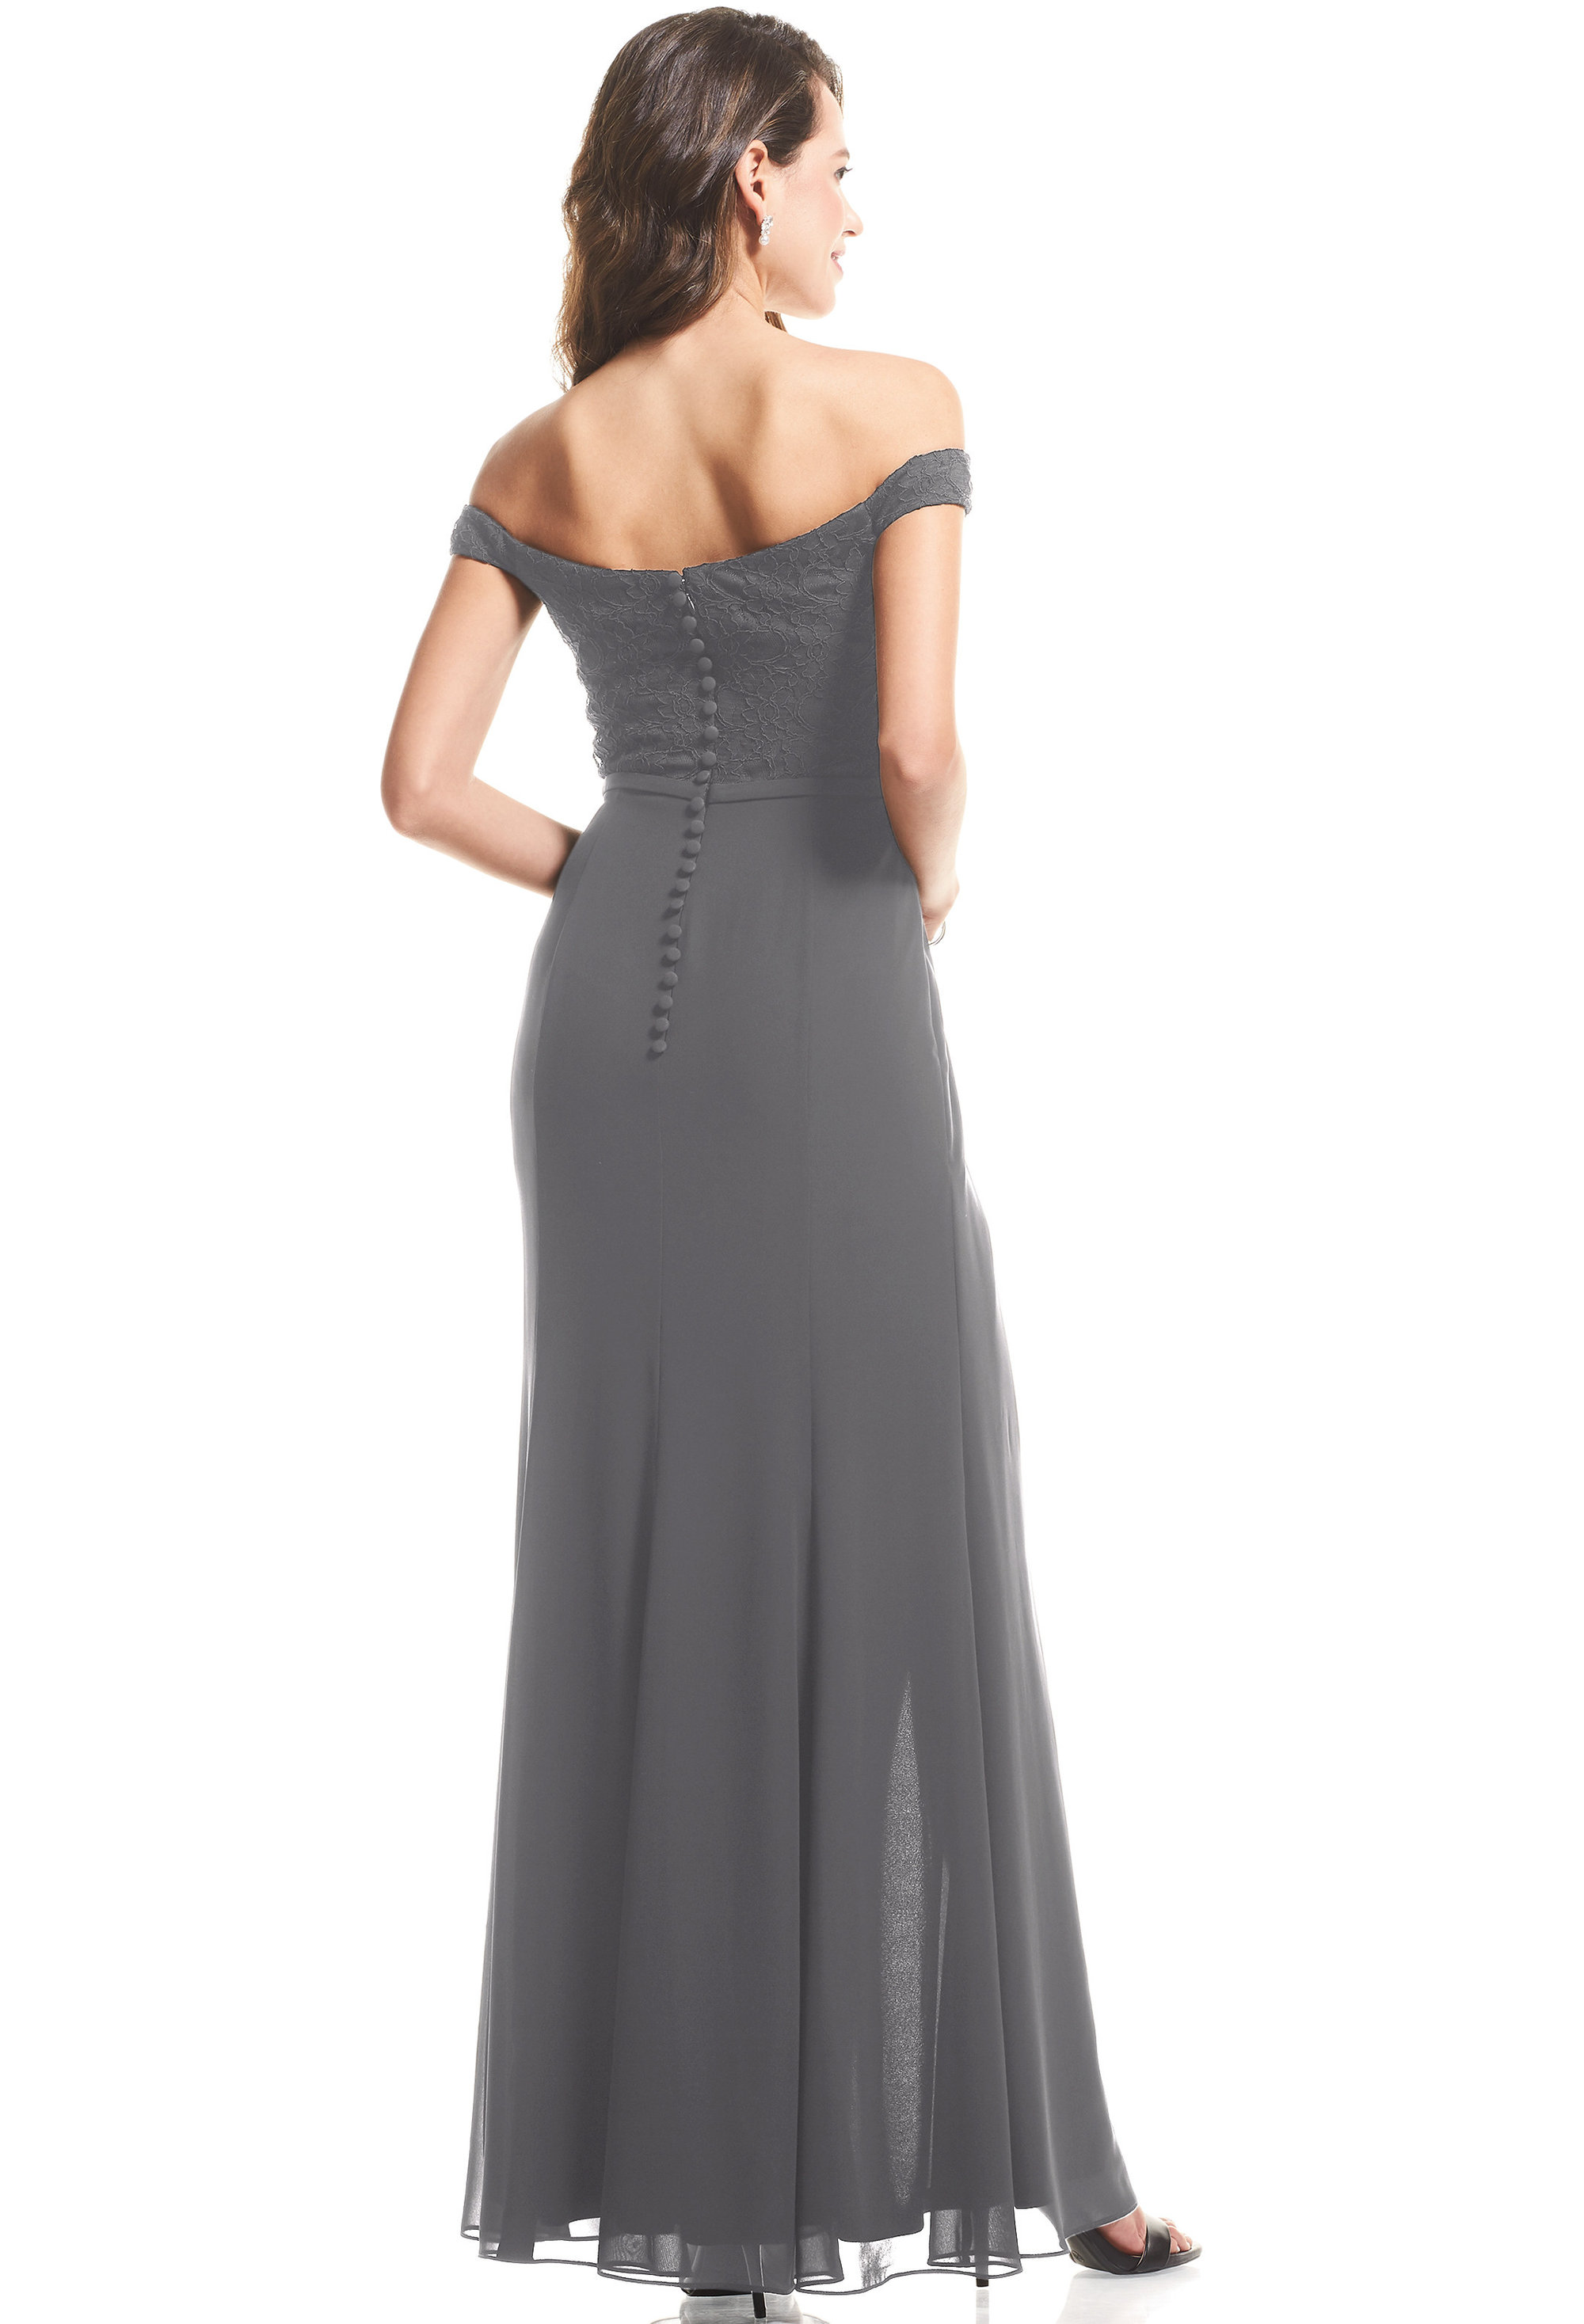 Bill Levkoff PEWTER Chiffon, Lace Sweetheart A-Line gown, $99.00 Back